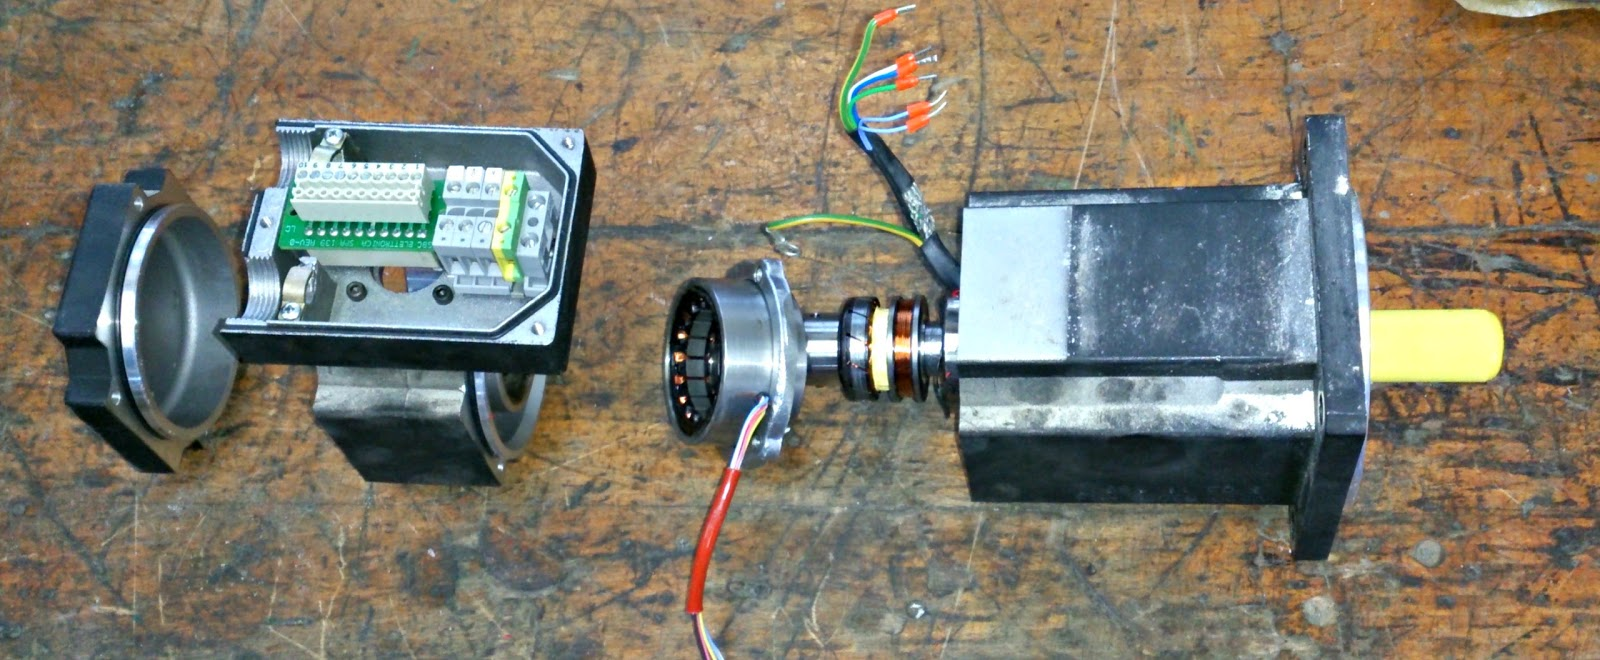 AC motor whith resolver